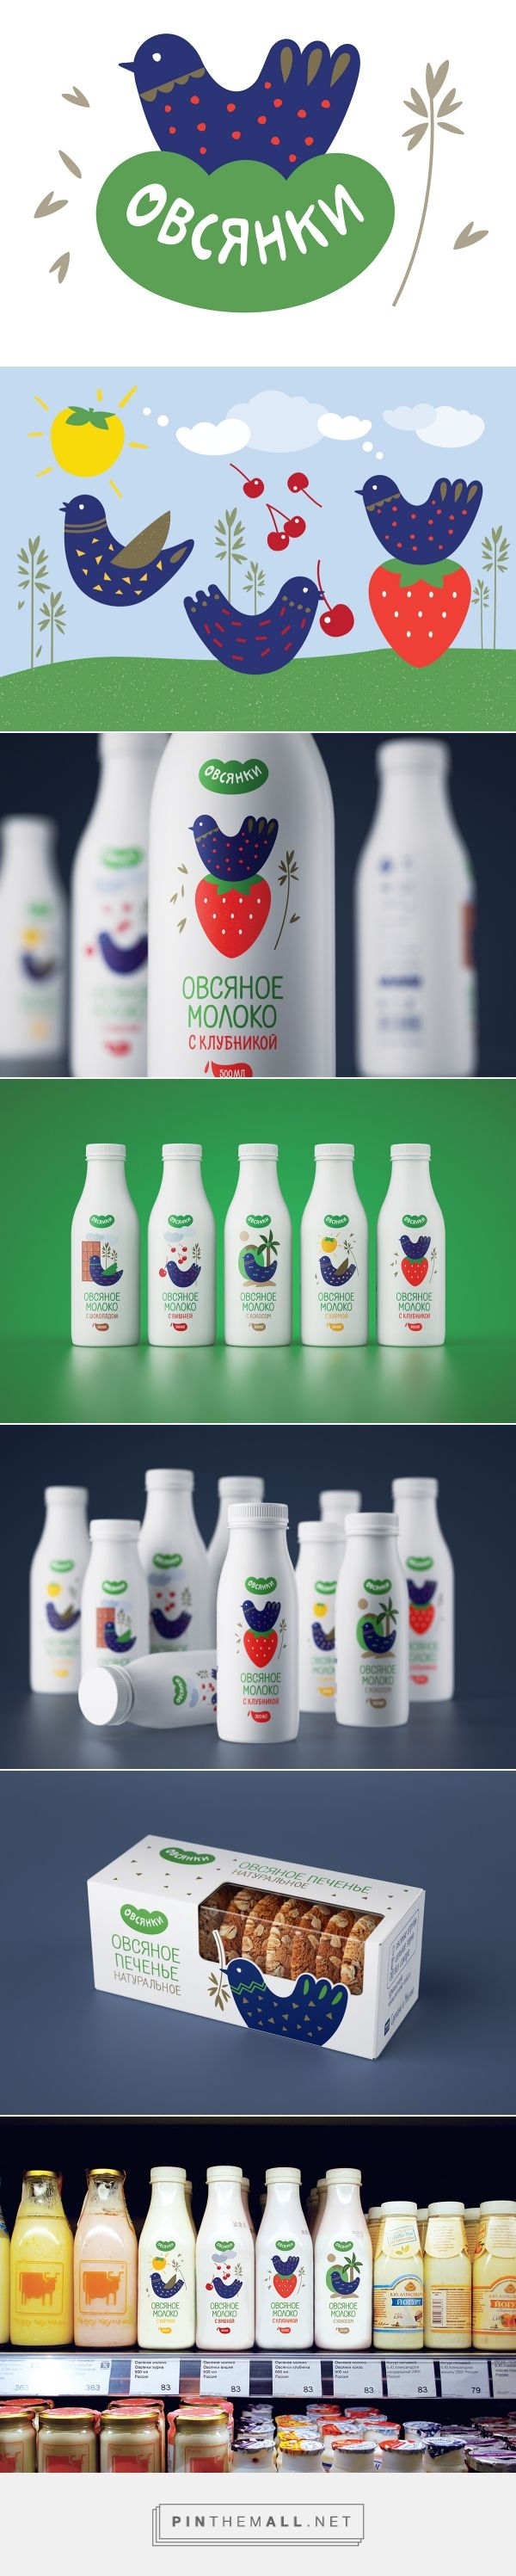 Овсянки / Oatbirds oat milk packaging by Daria Zhuchkova via Behance curated by…